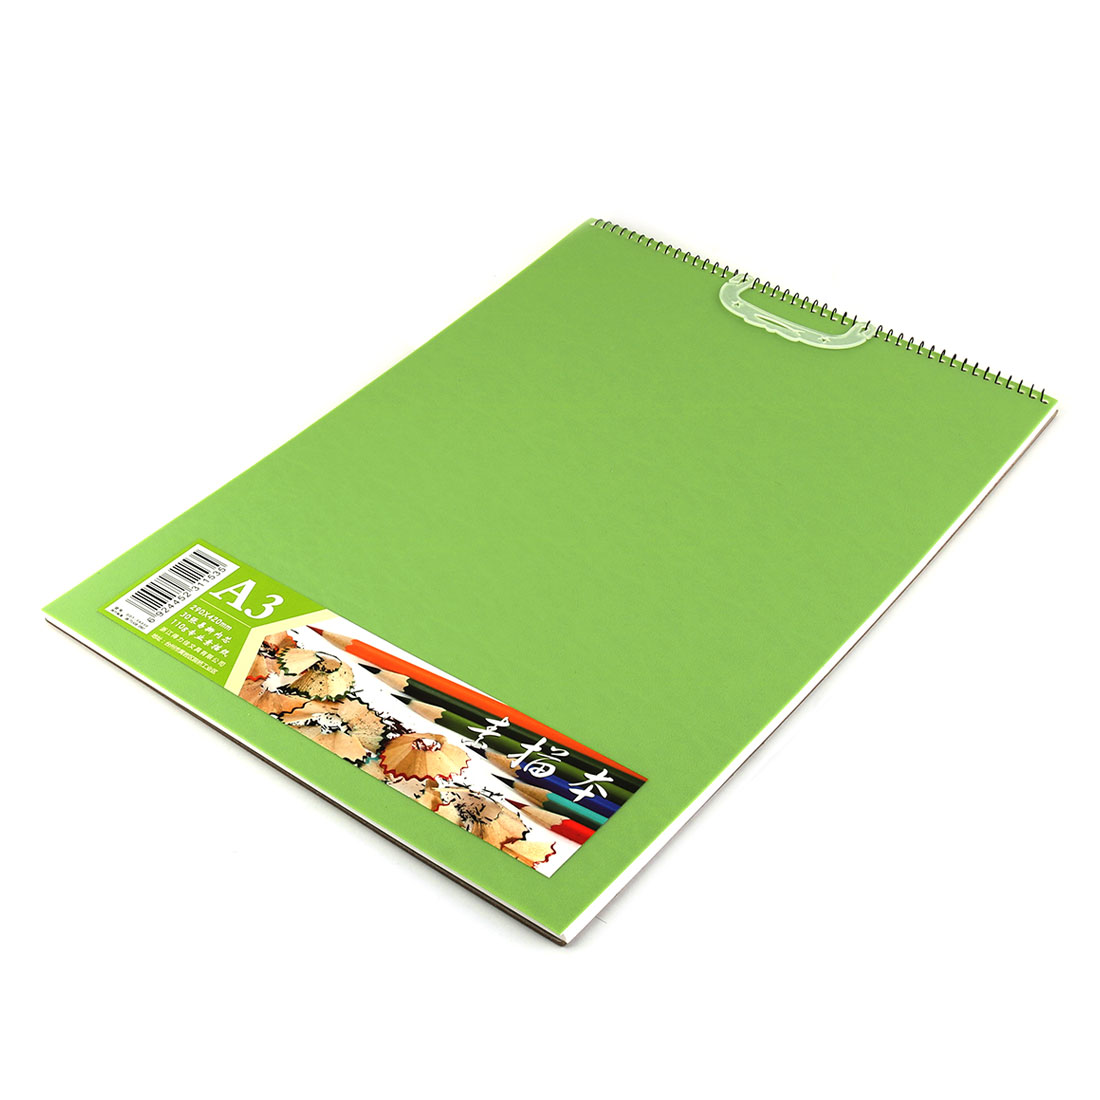 Delijia Authorized Spiral Bound Coil Drawing Paper Notepad Sketch Book Green